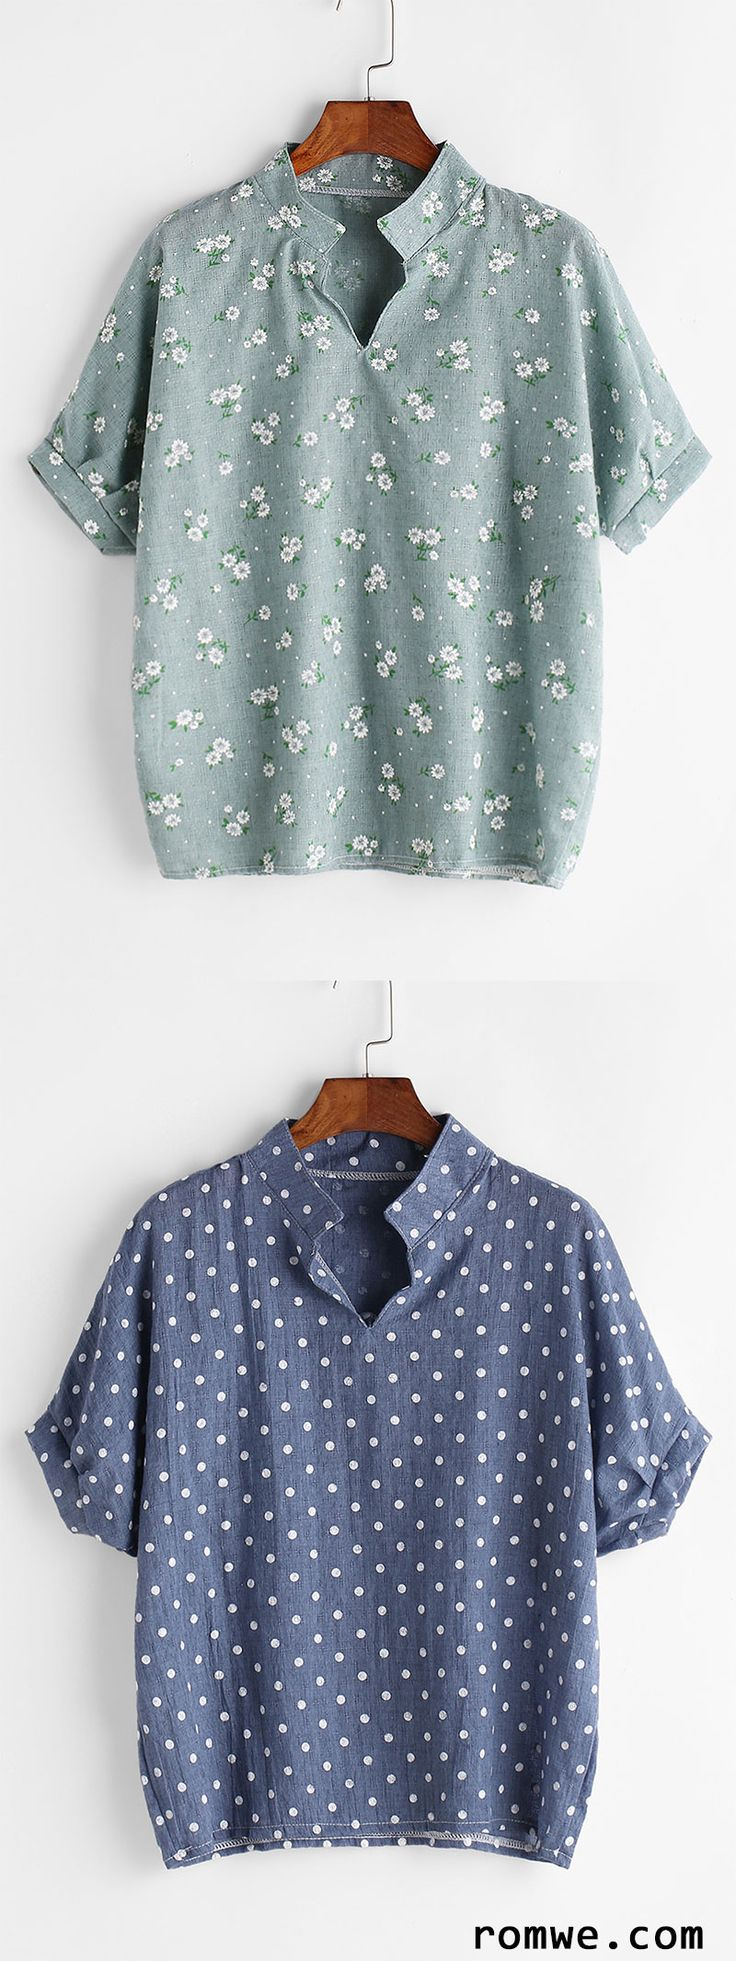 Stand Collar Blouse Designs Images : Stand collar calico print blouse romwe women style